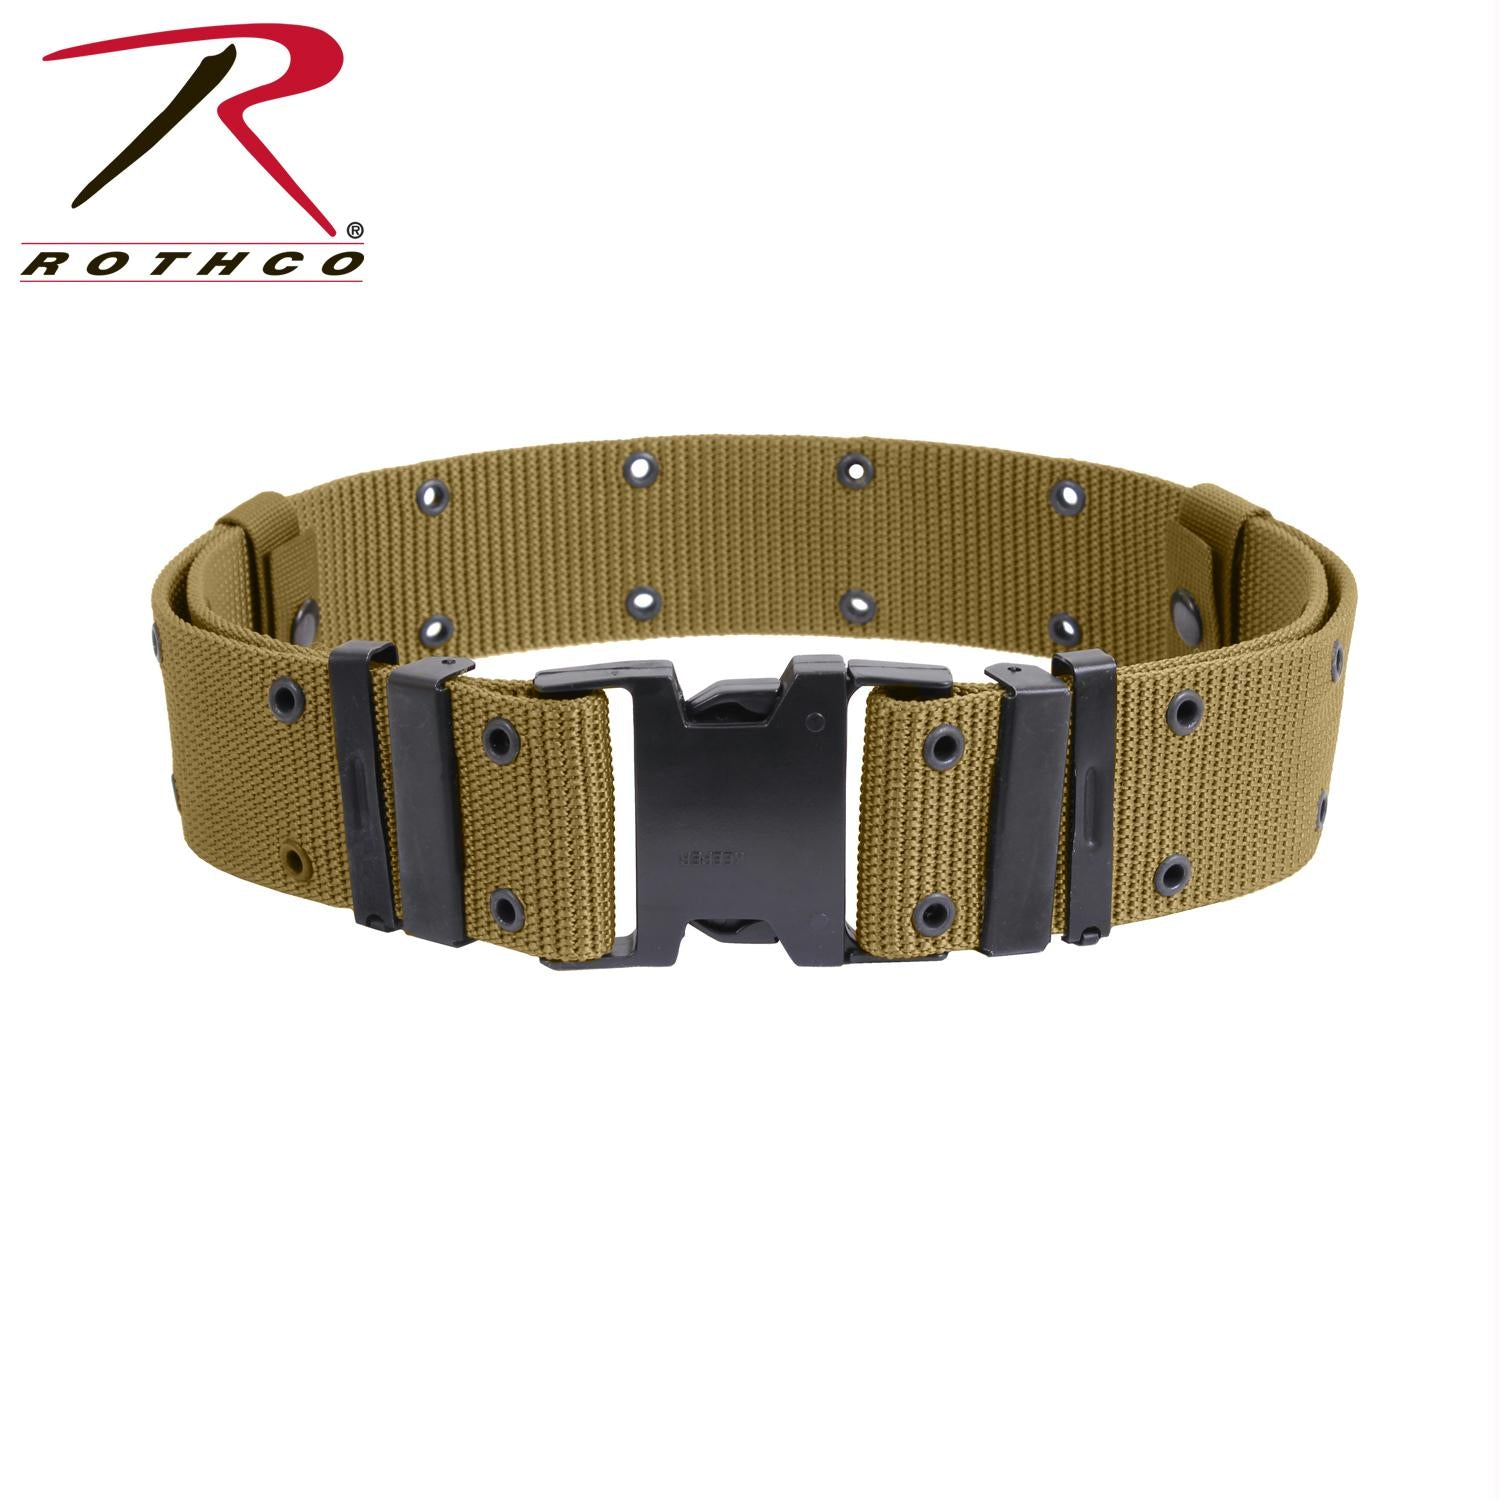 Rothco New Issue Marine Corps Style Quick Release Pistol Belts - Coyote Brown / L